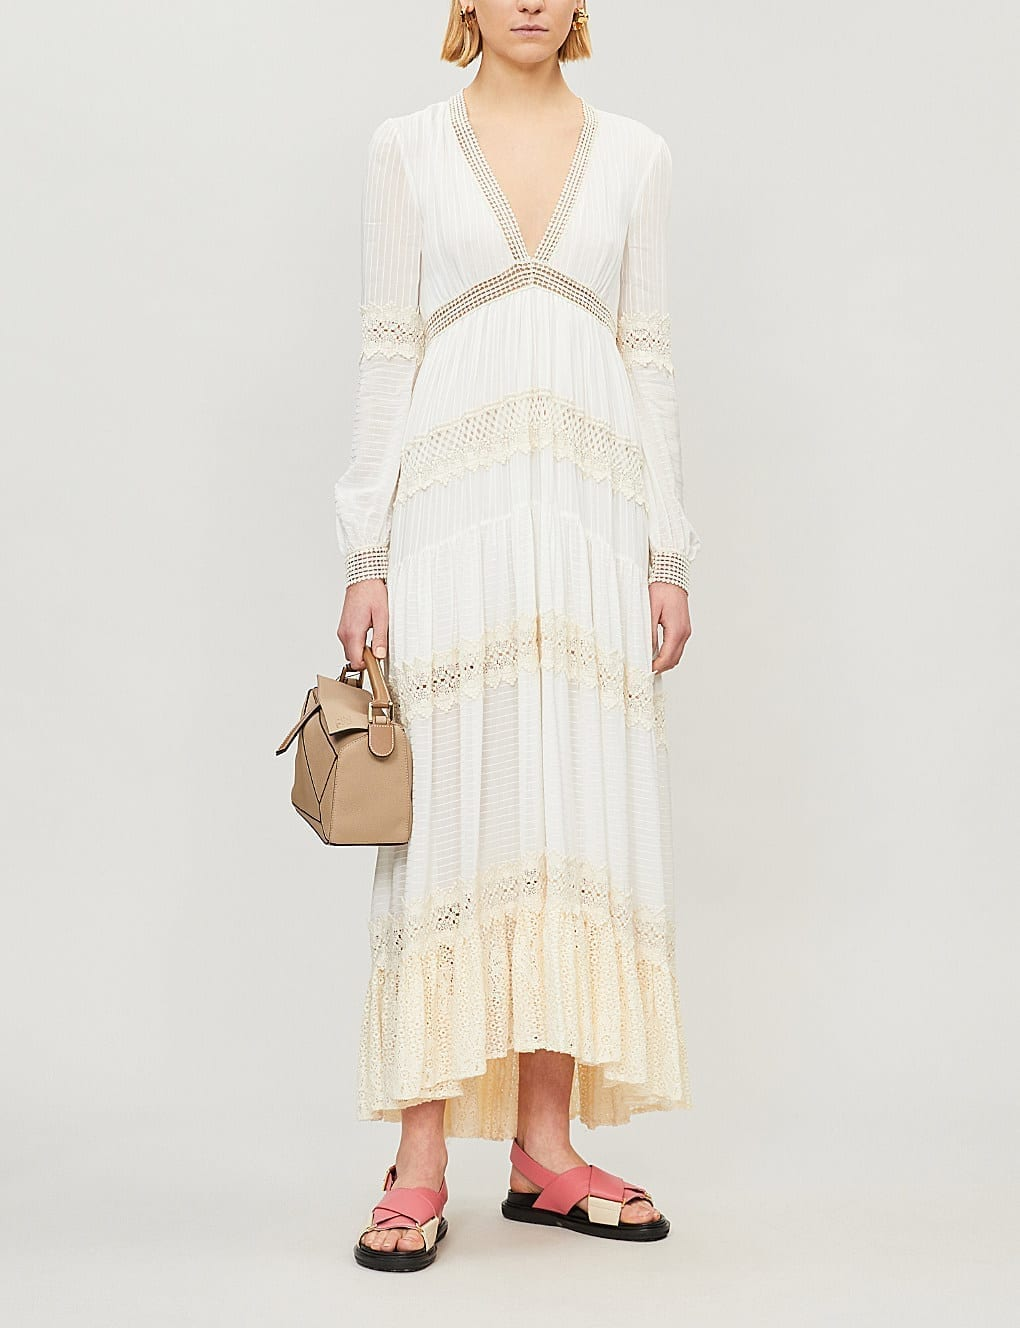 PHILOSOPHY DI LORENZO SERAFINI Lace-Panel Woven Maxi White Dress